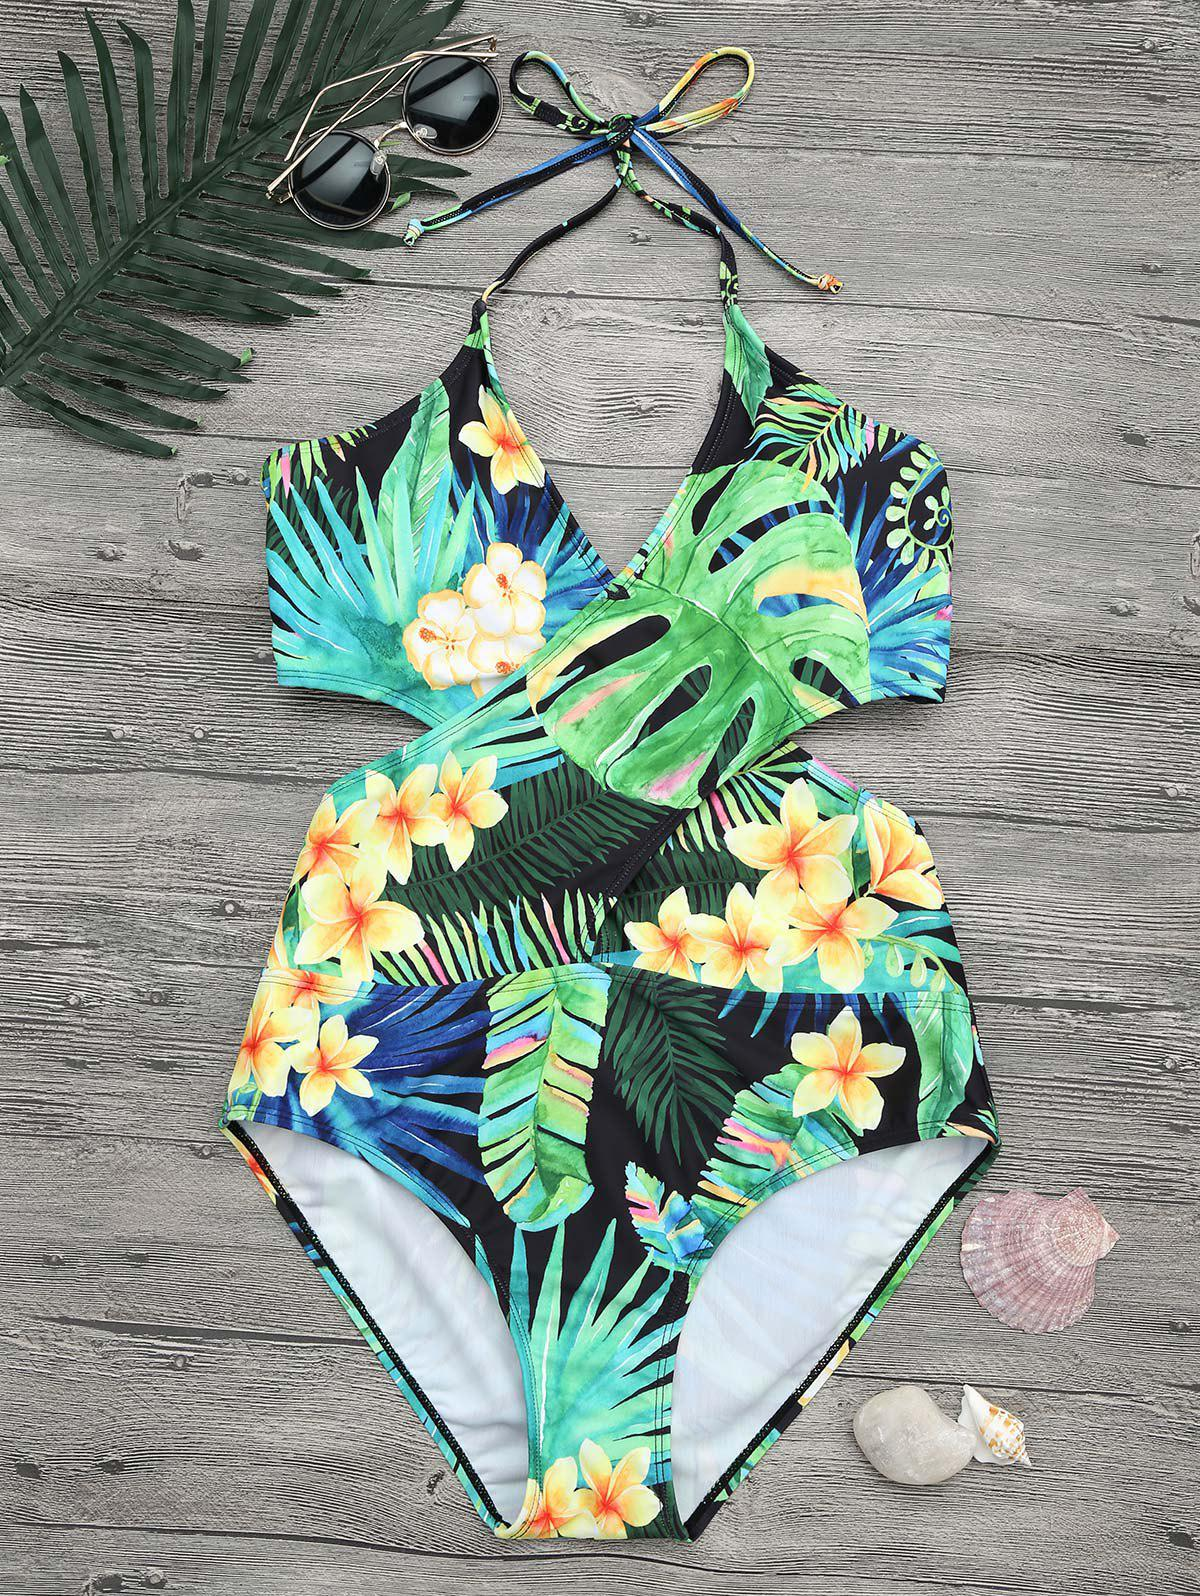 Tropical Floral Plus Size Wrap SwimsuitWOMEN<br><br>Size: XL; Color: COLORMIX; Gender: For Women; Swimwear Type: One Piece; Material: Nylon,Spandex; Bra Style: Padded; Support Type: Wire Free; Pattern Type: Floral; Waist: Natural; Weight: 0.2700kg; Package Contents: 1 x Swimsuit;